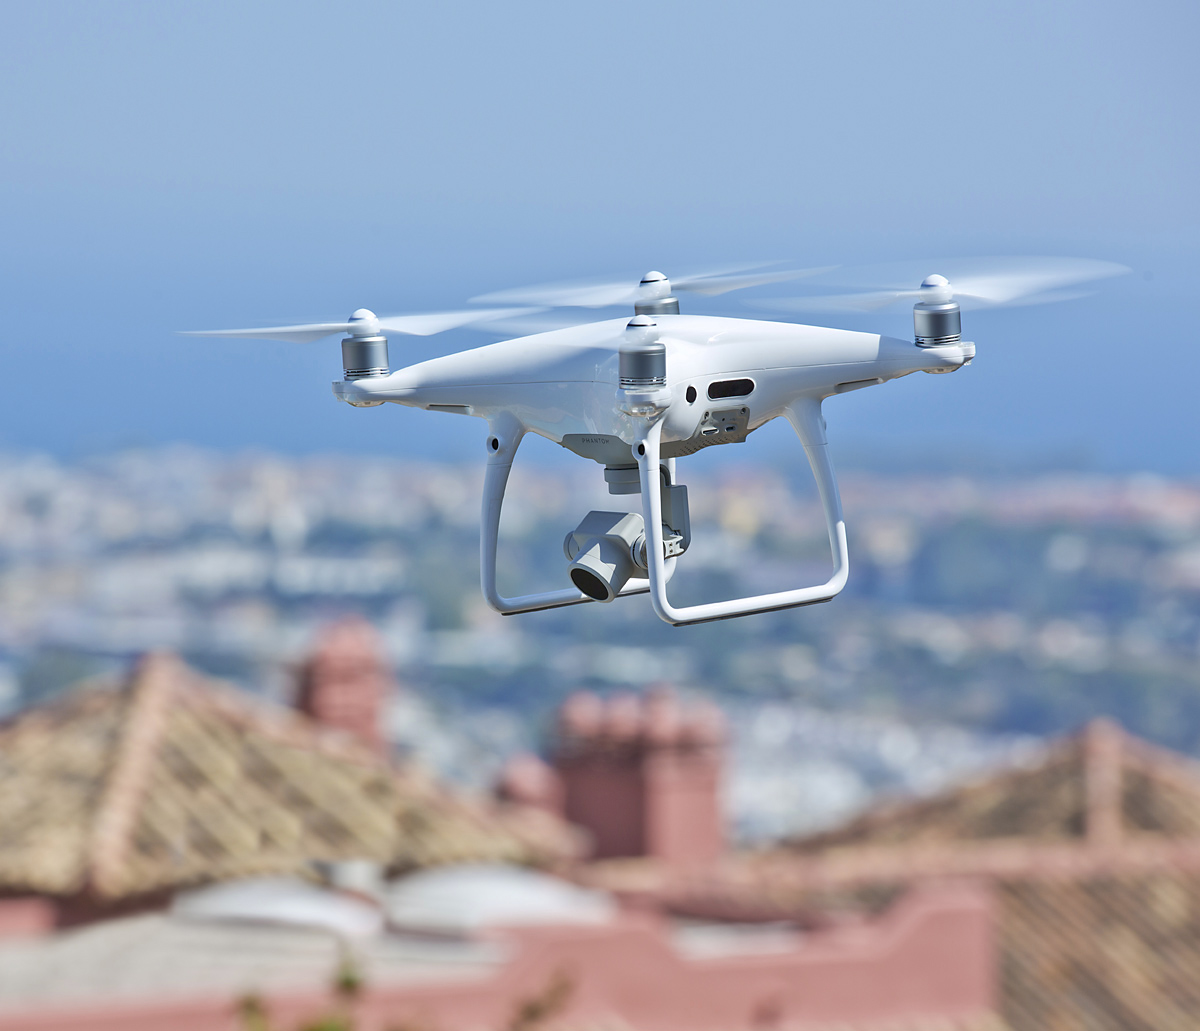 Drone fines in Spain,Drone Photography, Marbella Done Pilot, Licensed Drone Operator, DJI Marbella, Drone Cameraman, Drone Operator Marbella